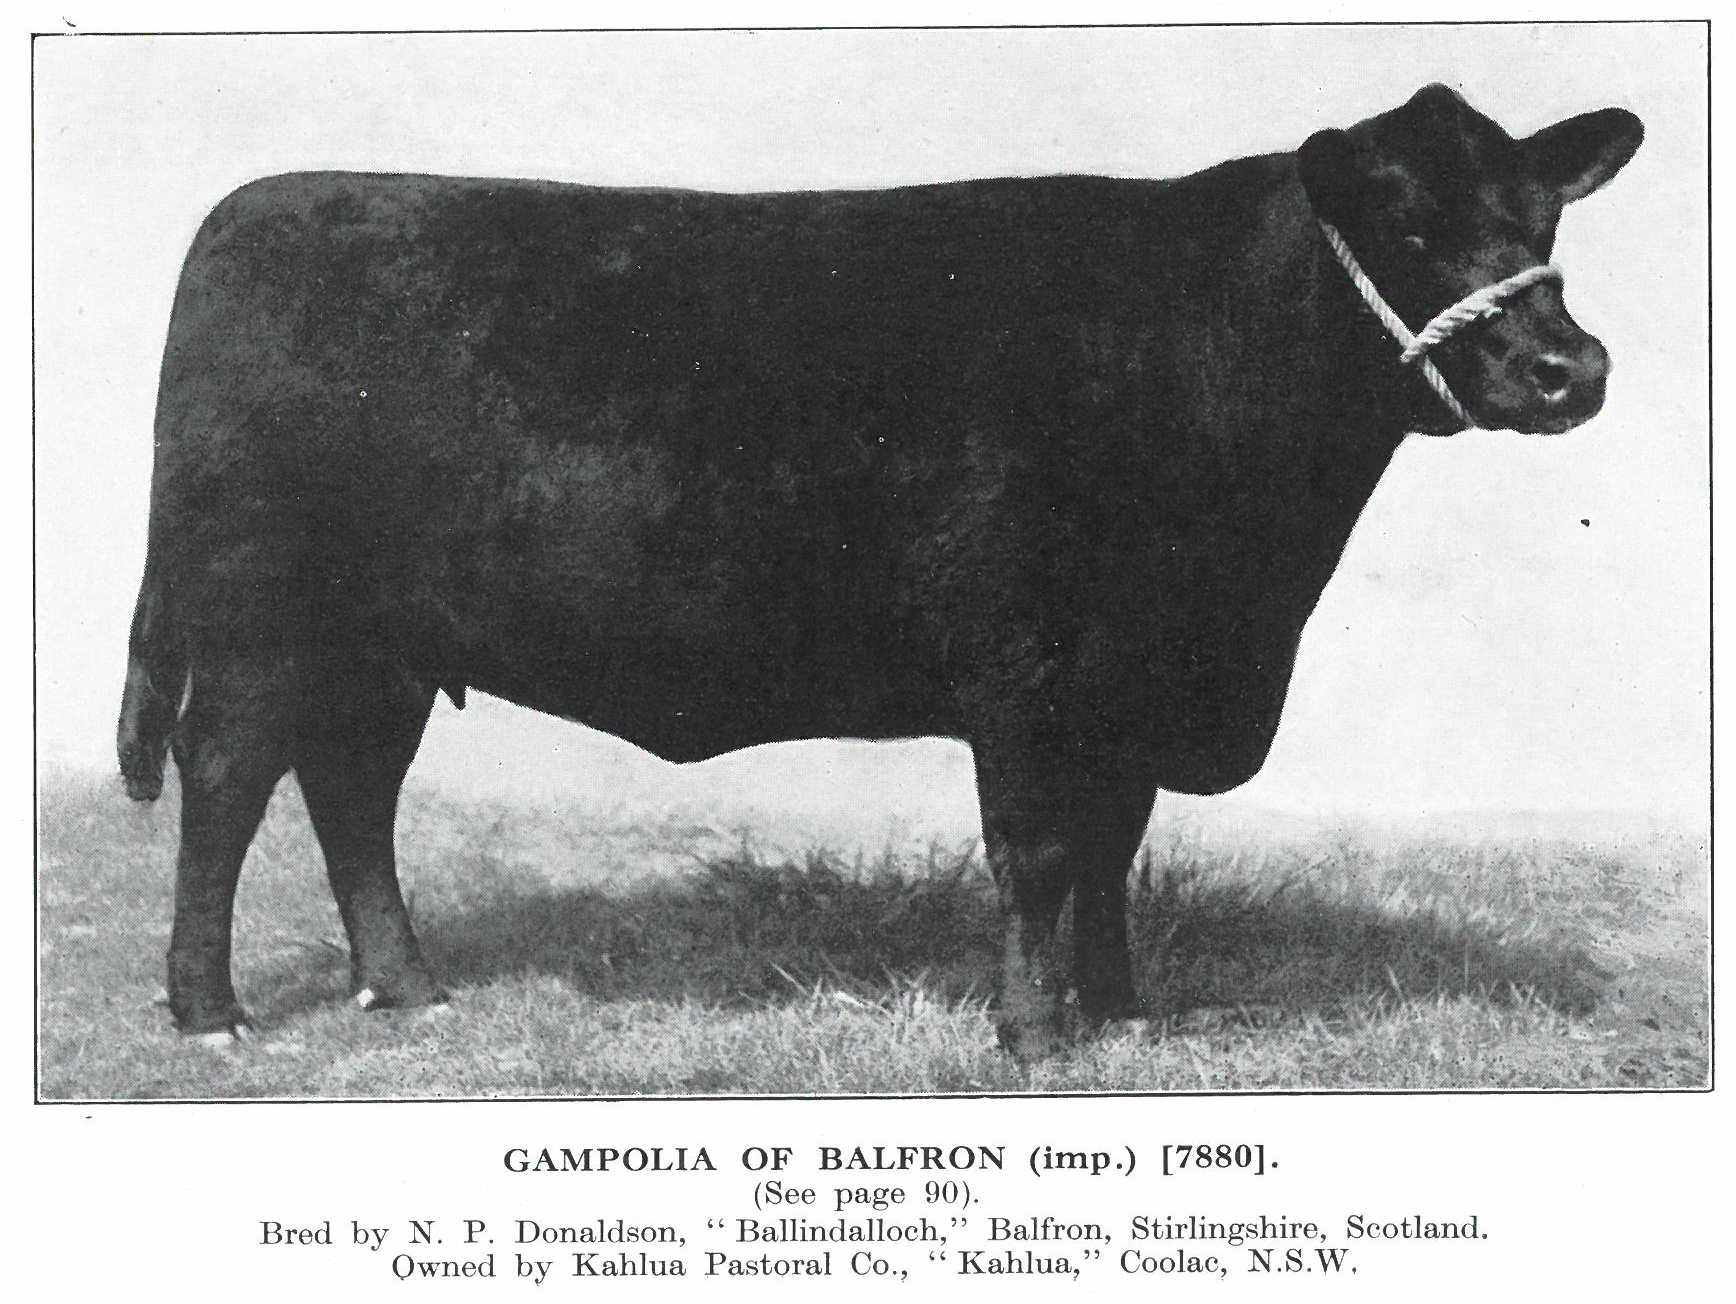 Gampolia of Balfron